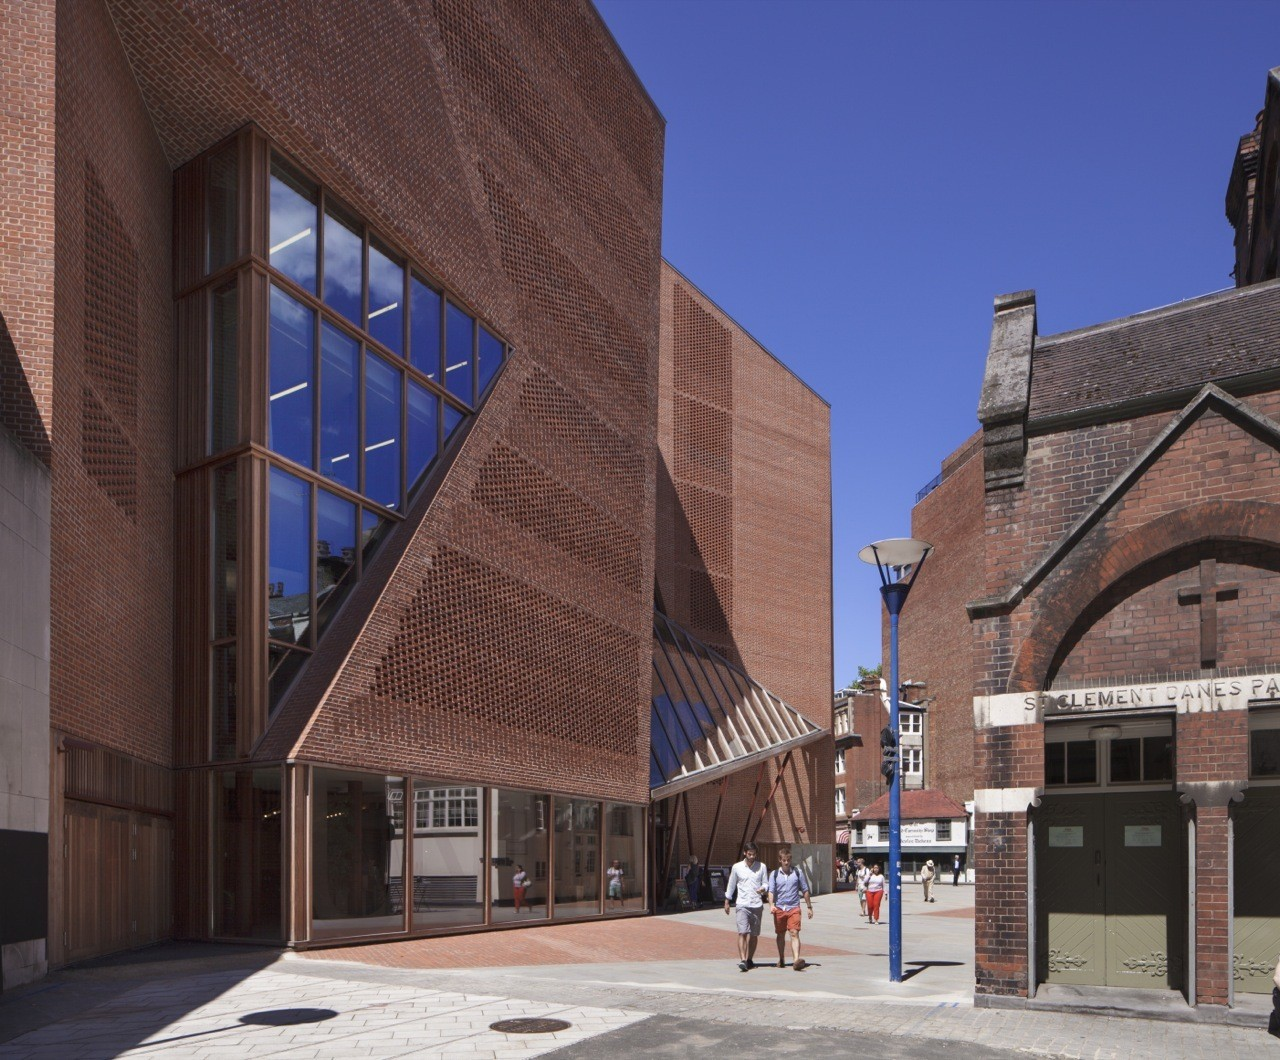 Centro de Estudiantes LSE Saw Hock / O'Donnell + Tuomey Architects. Imagen © Alex Bland